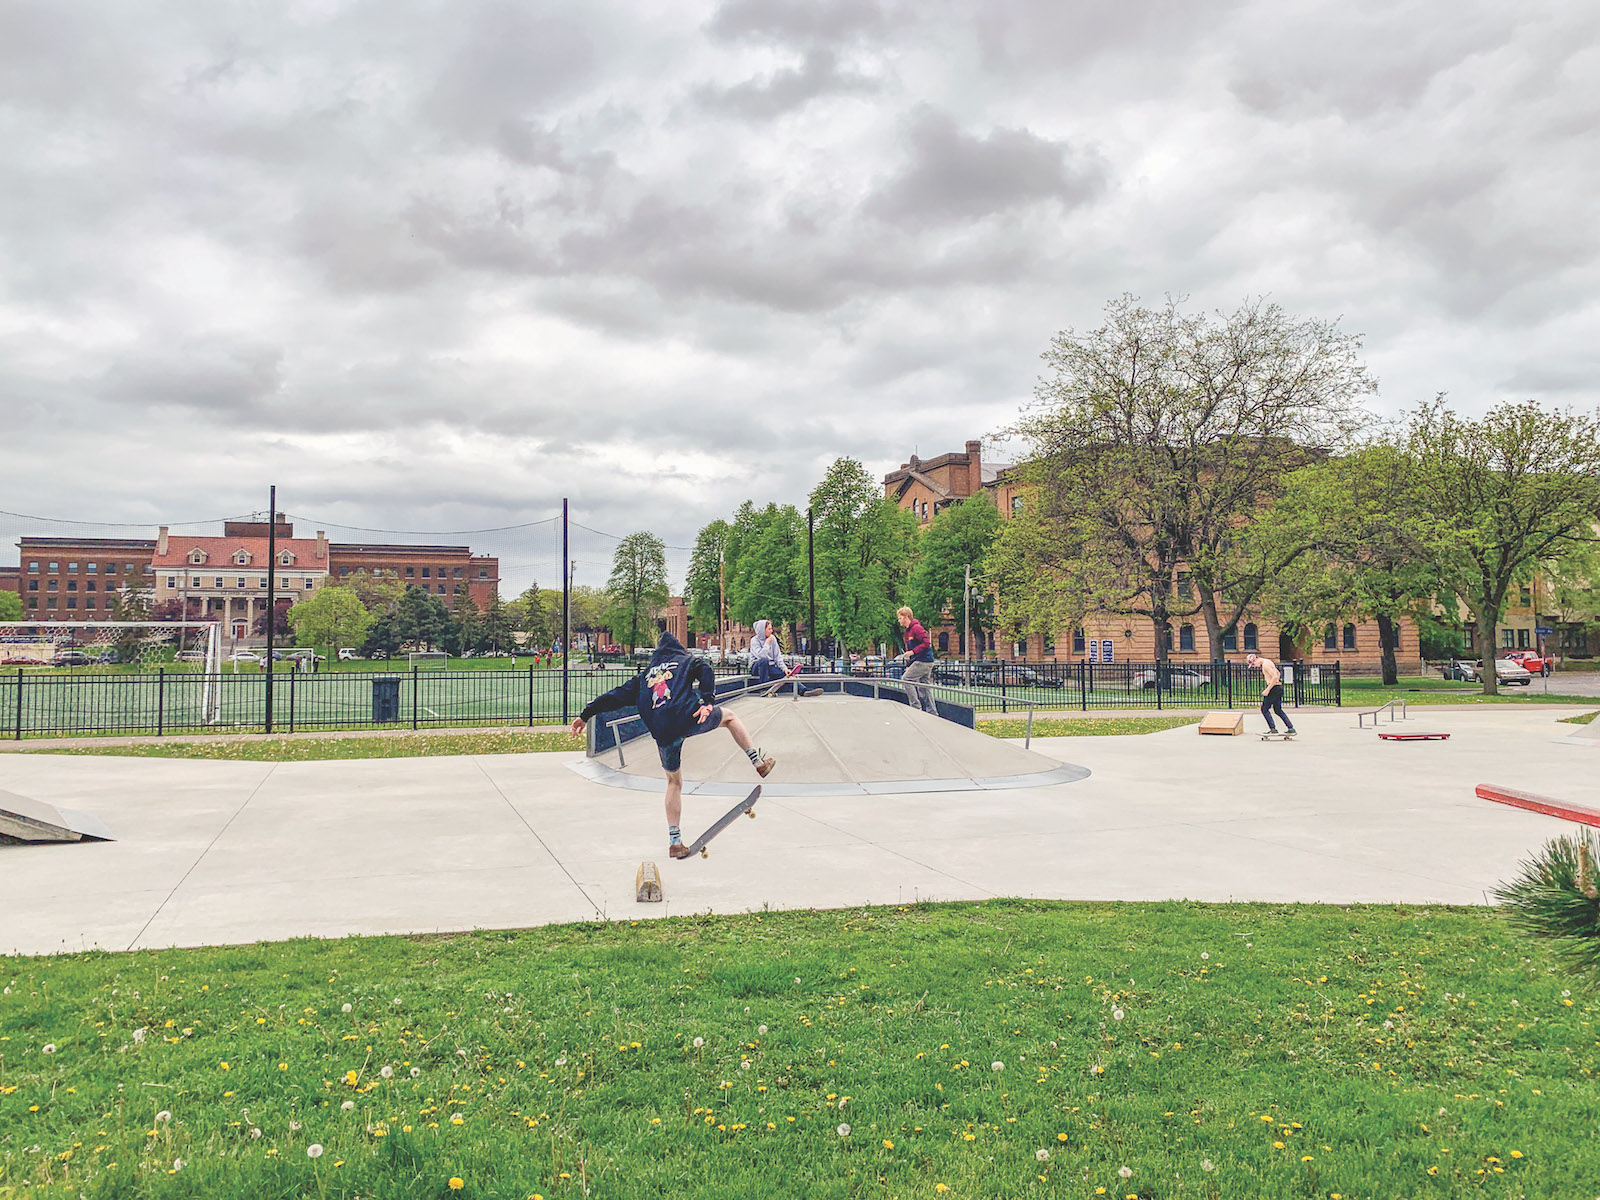 Skaters try tricks and hangout at Elliot Park. Photo by Andrew Hazzard